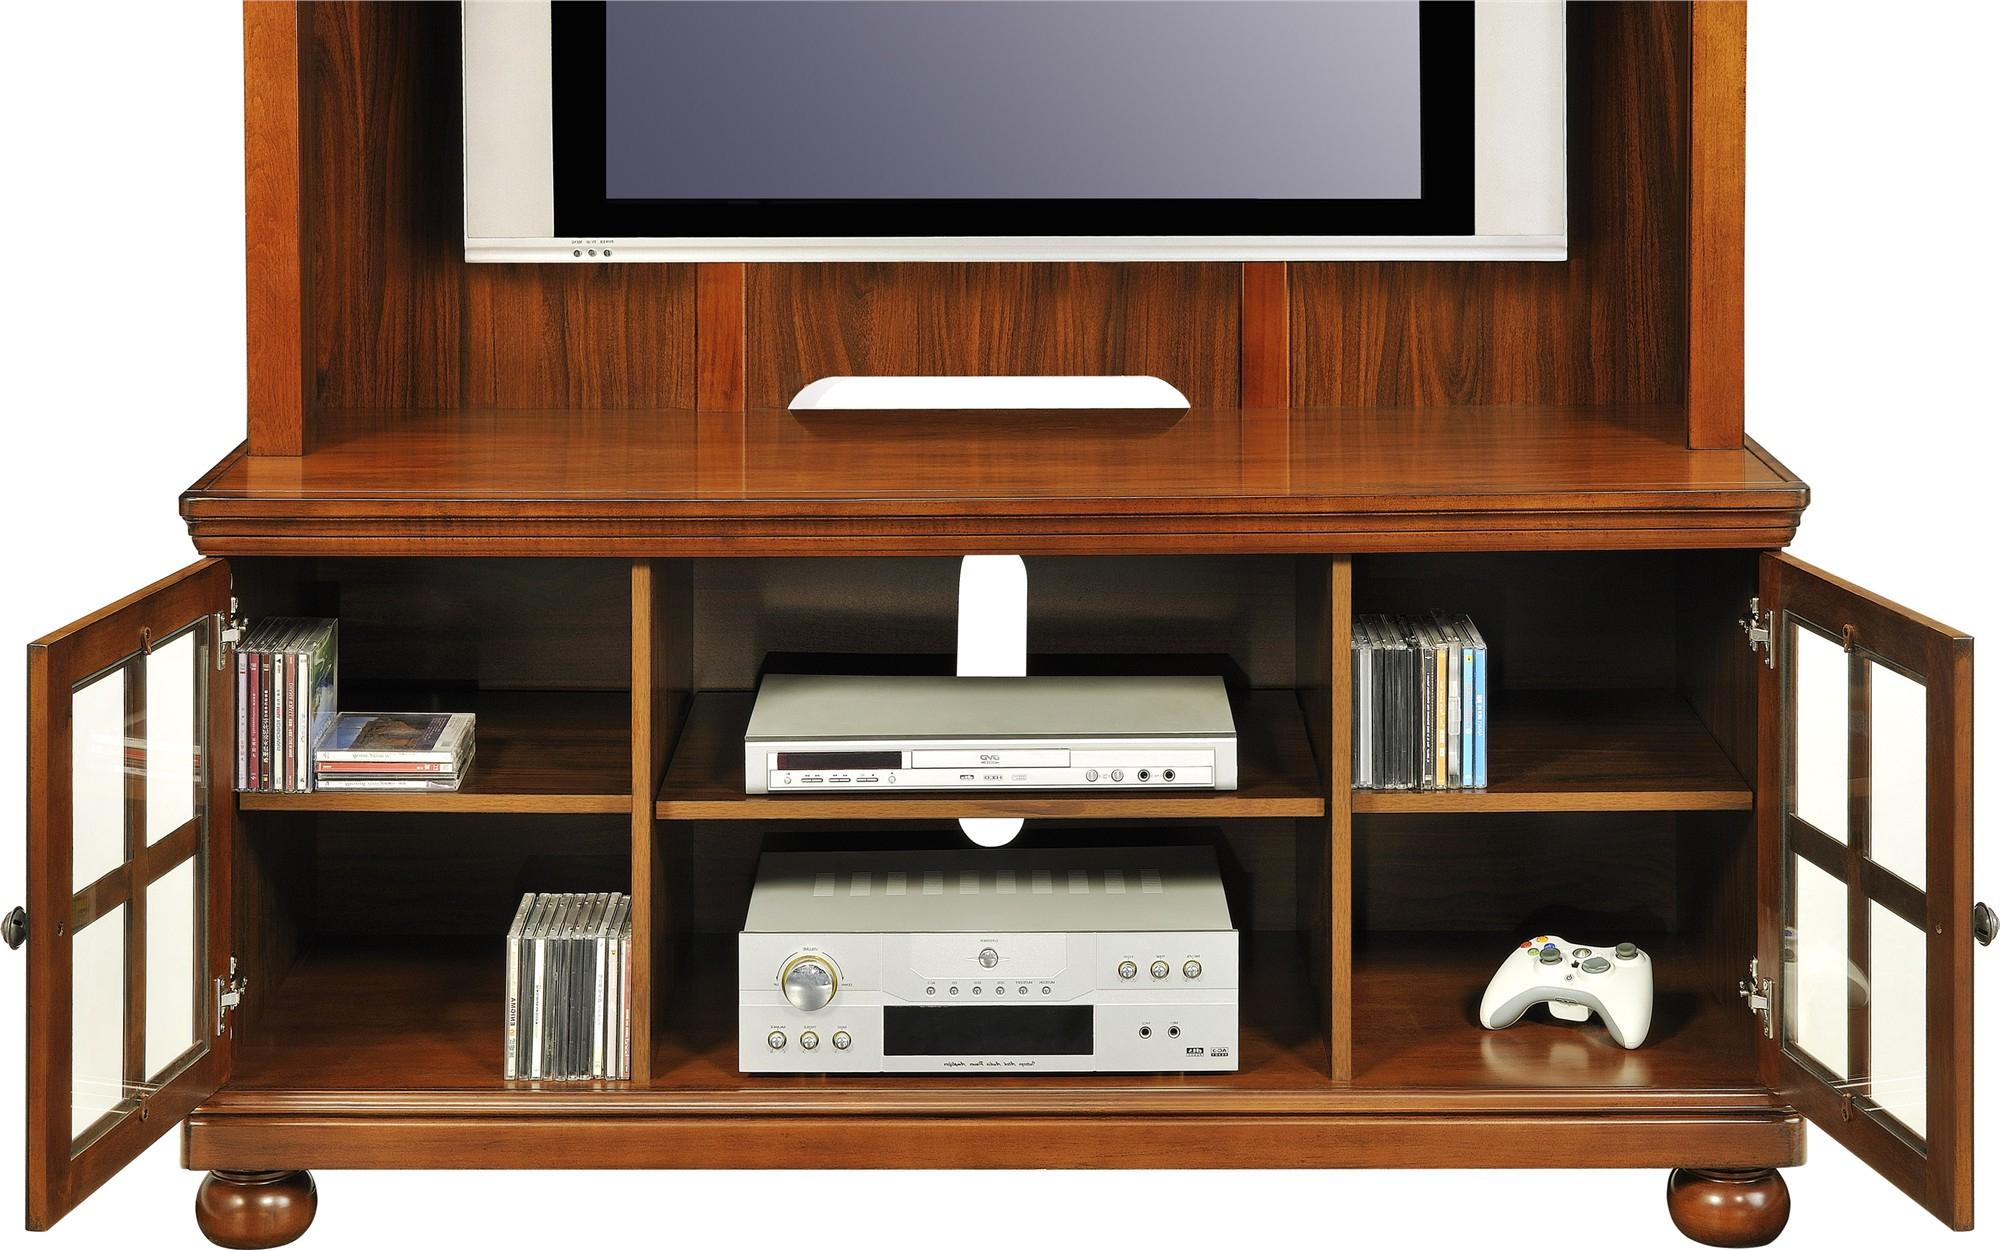 2018 Wooden Tv Stands For Flat Screens Inside Flat Screen Tv Stands Wood Encouragement Accent Cabinets – Furnish Ideas (View 5 of 20)